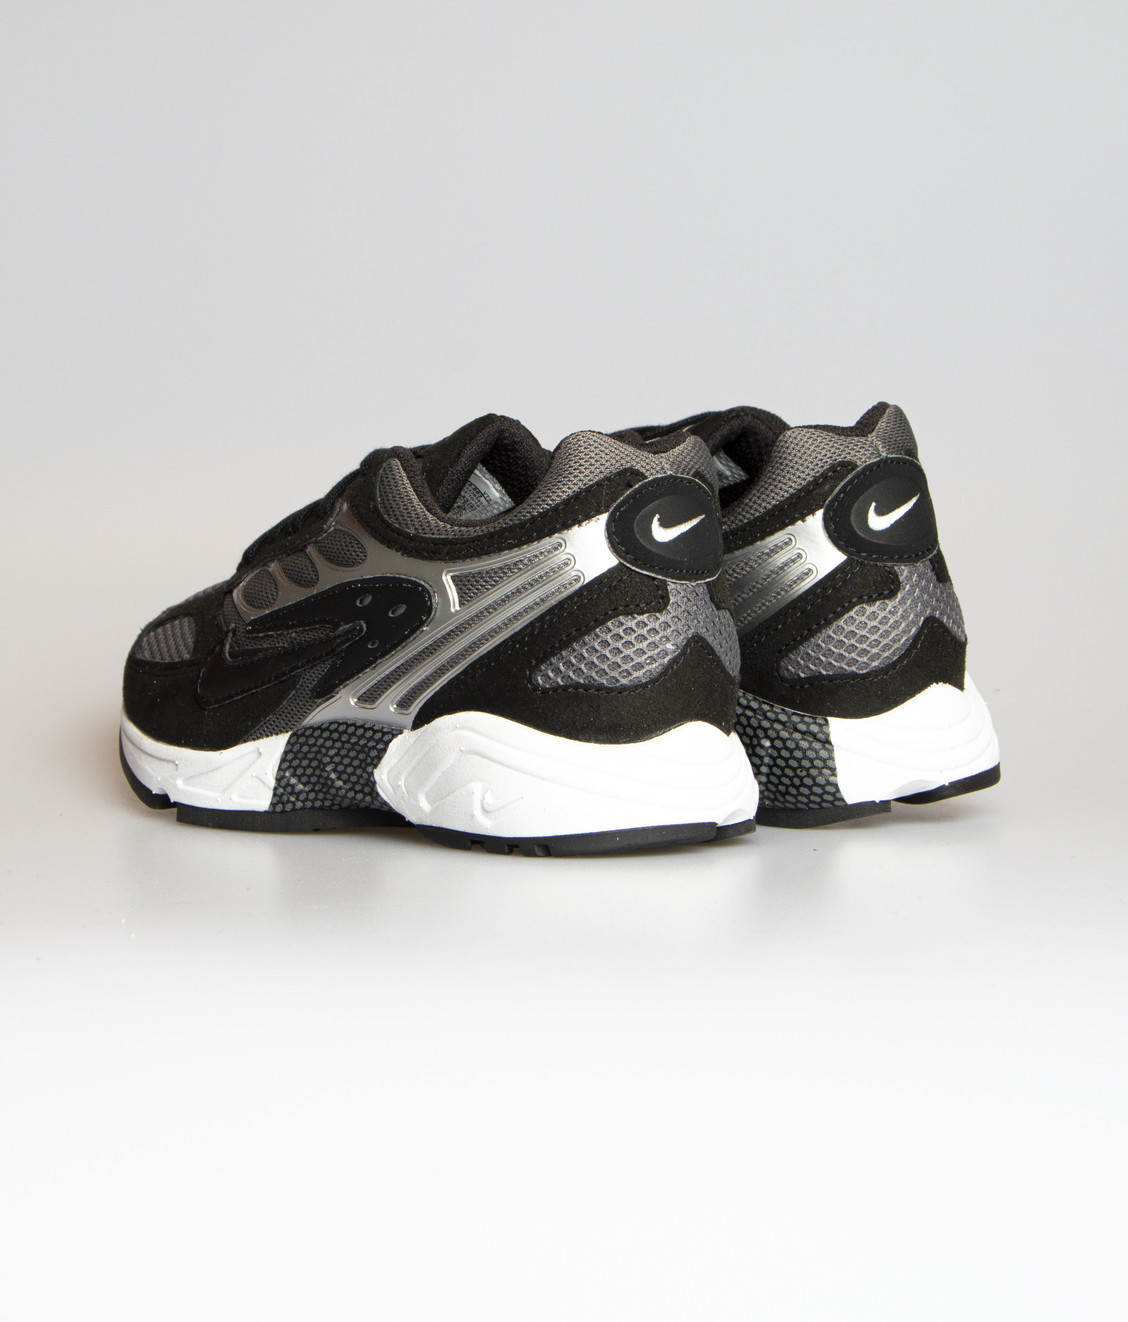 Nike Nike Air Ghost Racer Black Dark Grey